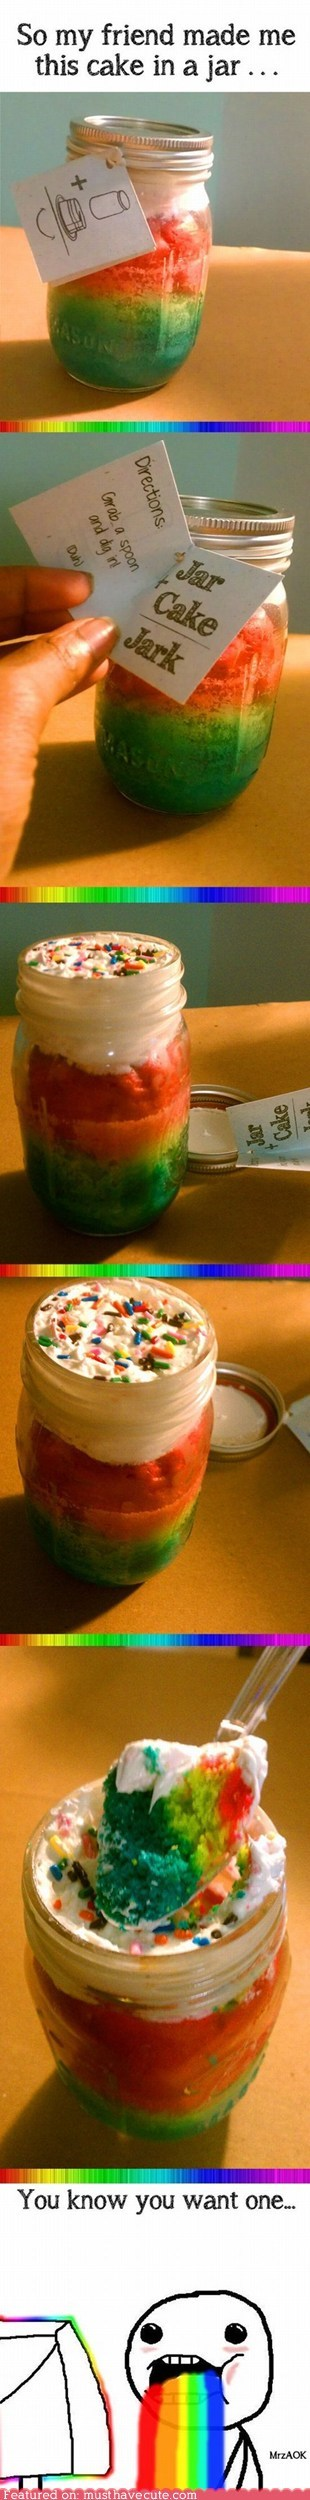 Epicute: Rainbow in a Jar